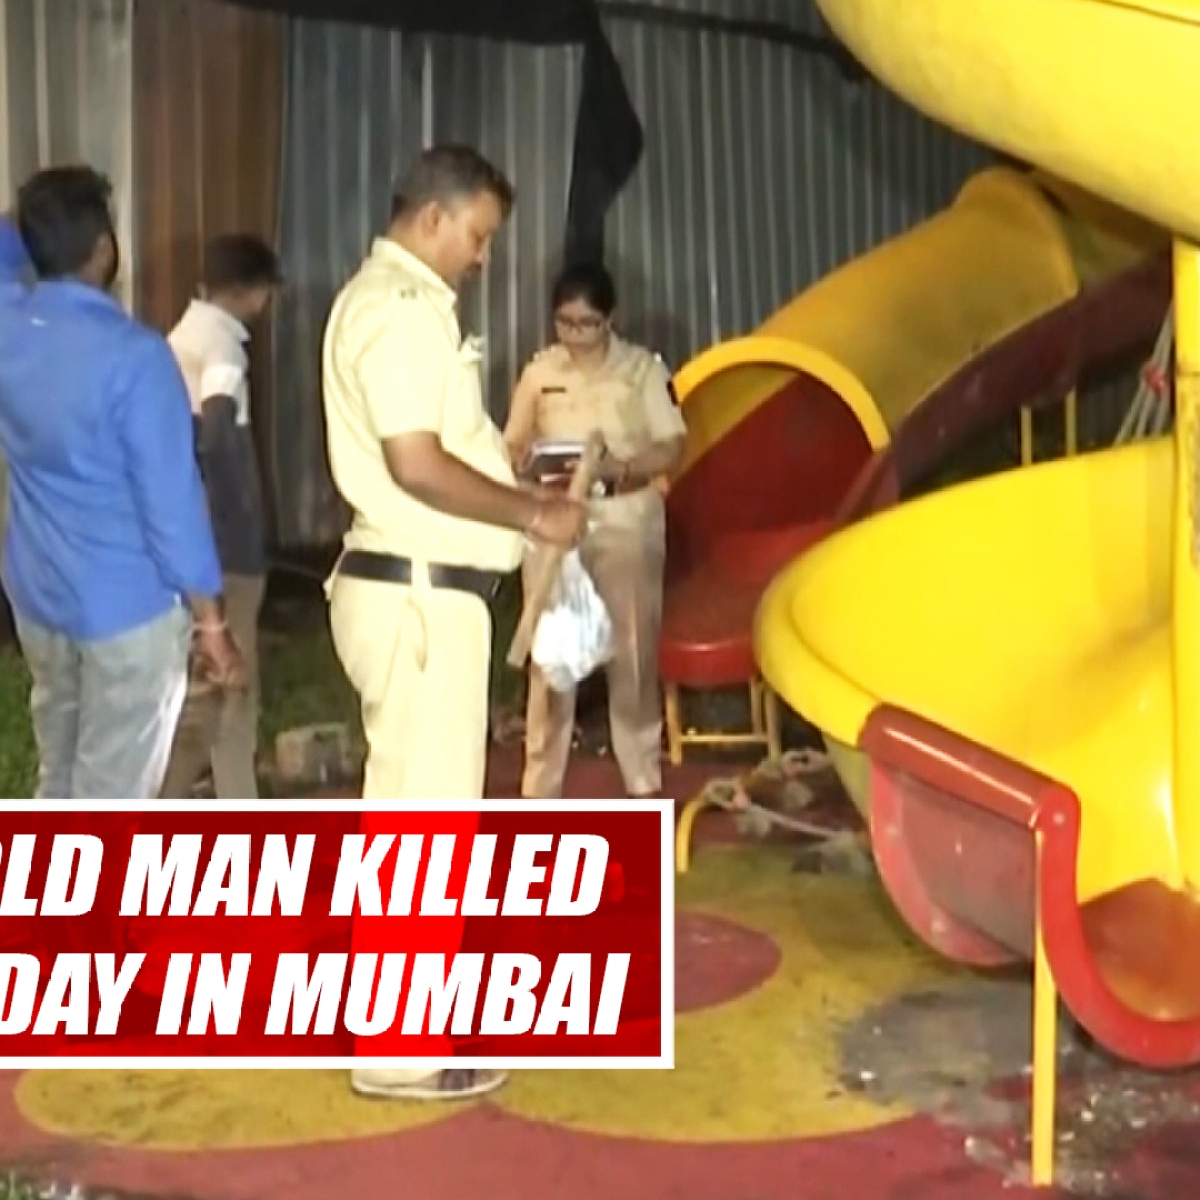 27-Year-old Man Killed On His Birthday In Mumbai